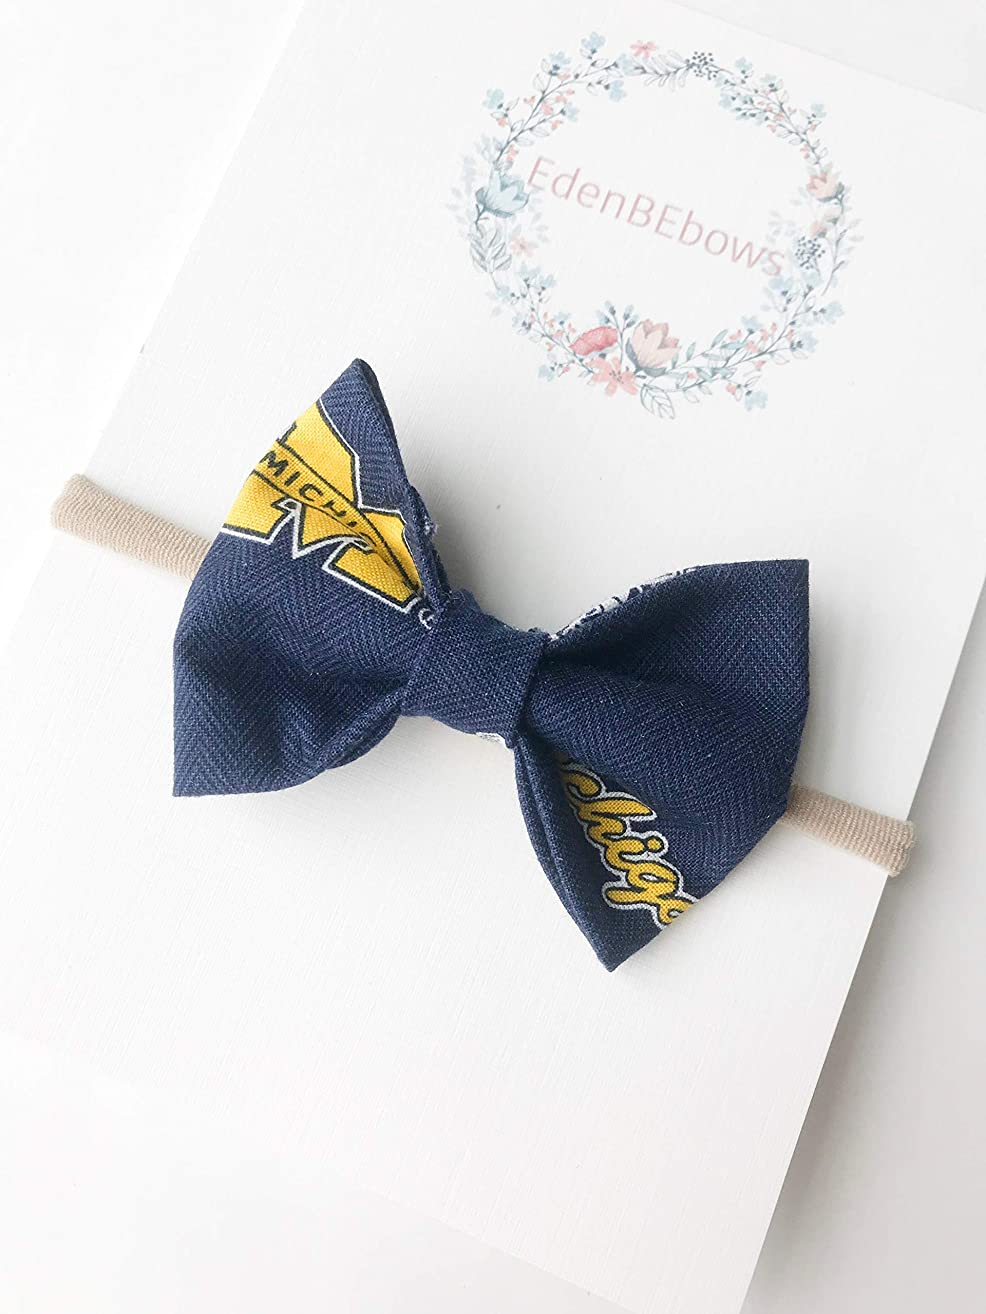 University of Michigan Wolverine Headband bow - great for baby shower, newborn, toddler girls - extra soft nylon headbands